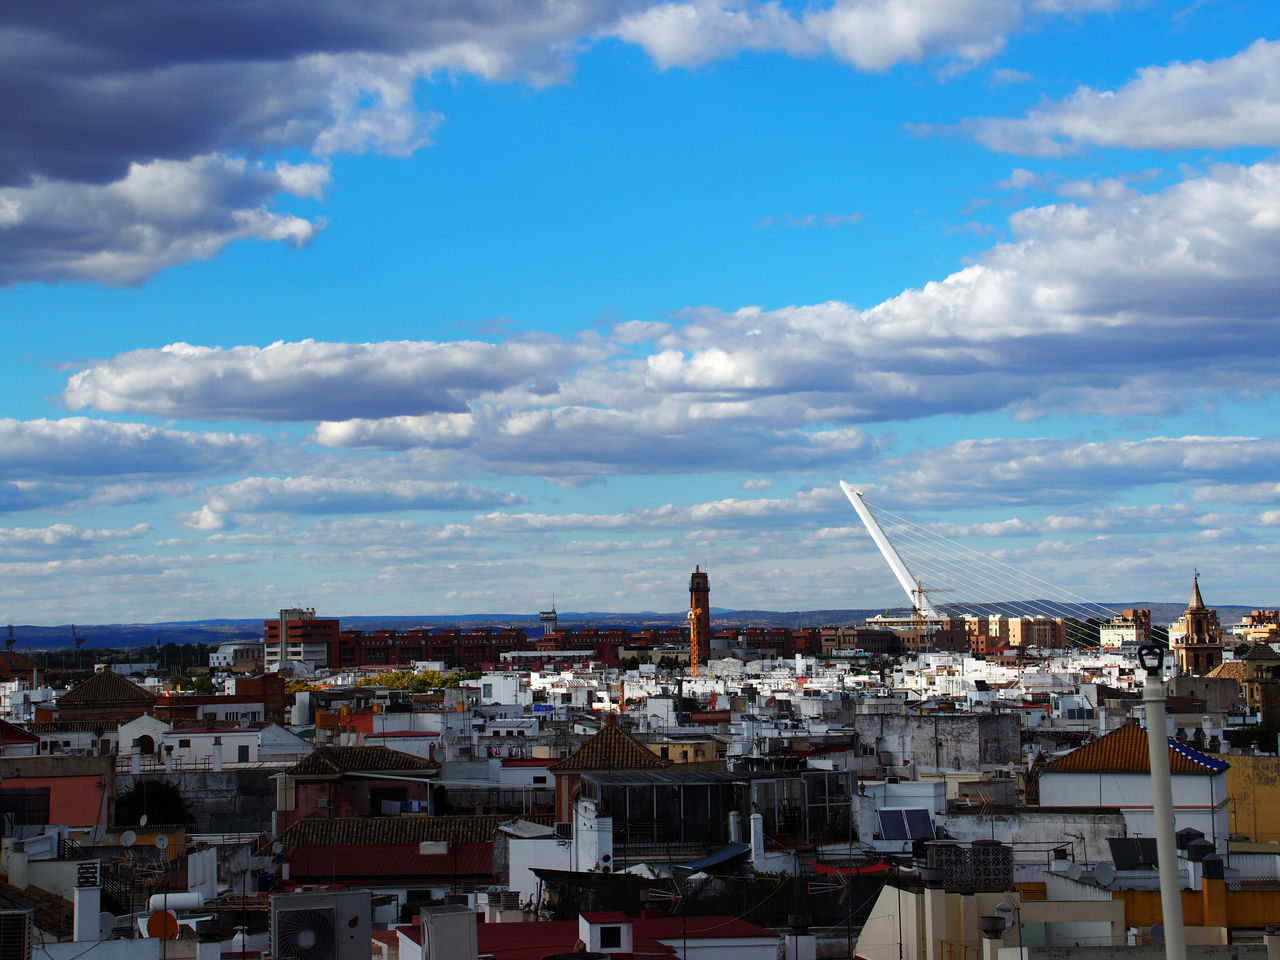 See the world with different eyes! Architecture Architecture Bridge Cityscape Cloud Cloud - Sky Fernweh History Horizon Over Land Memories Oldtown Roof Secondhome Sevilla Sky SPAIN Travel Around The World Travelwithmygirlfriend Urban Scene